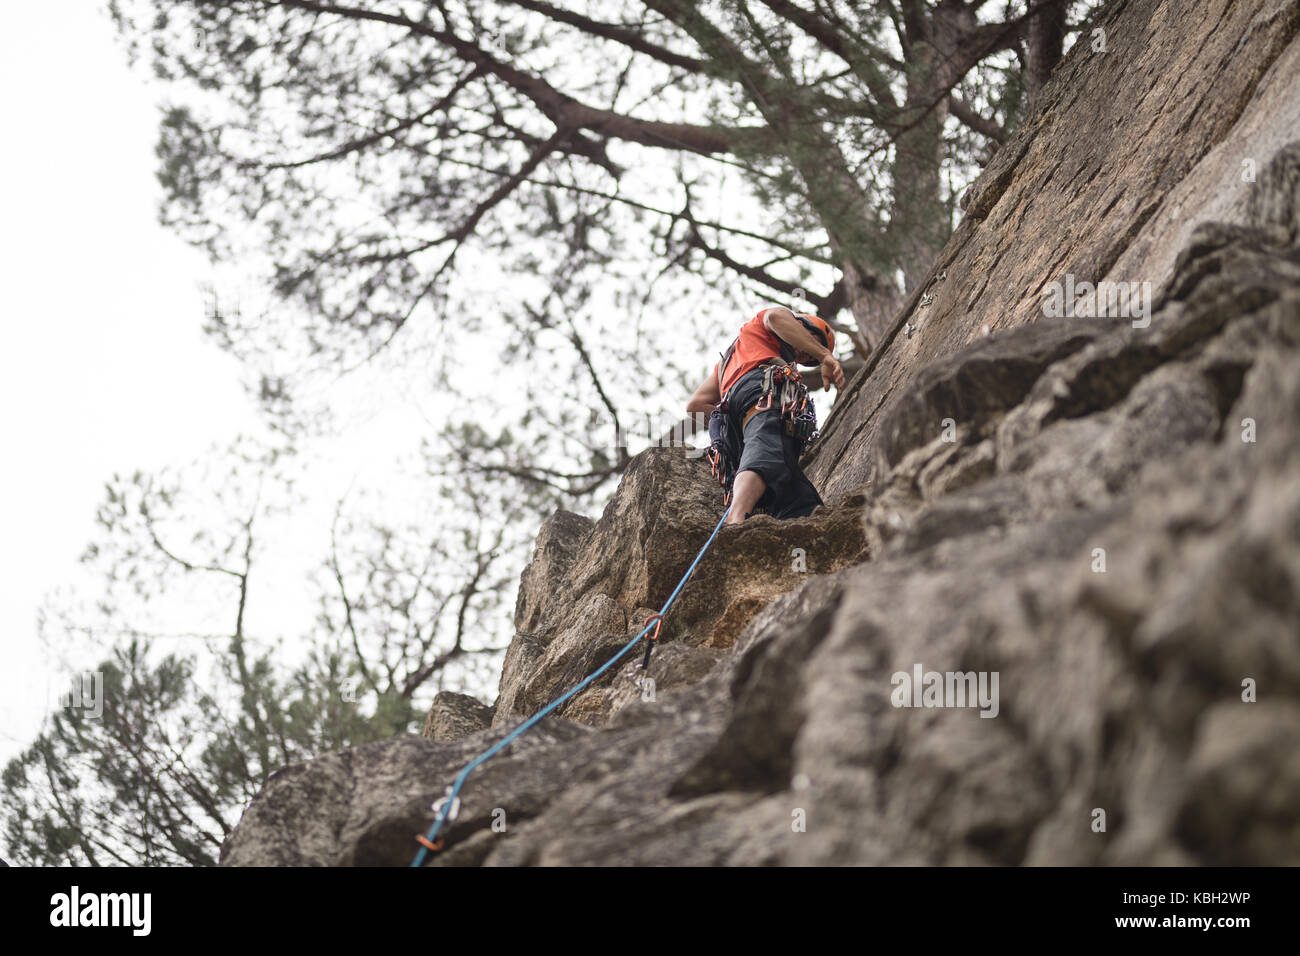 Low section of man climbing mountain - Stock Image